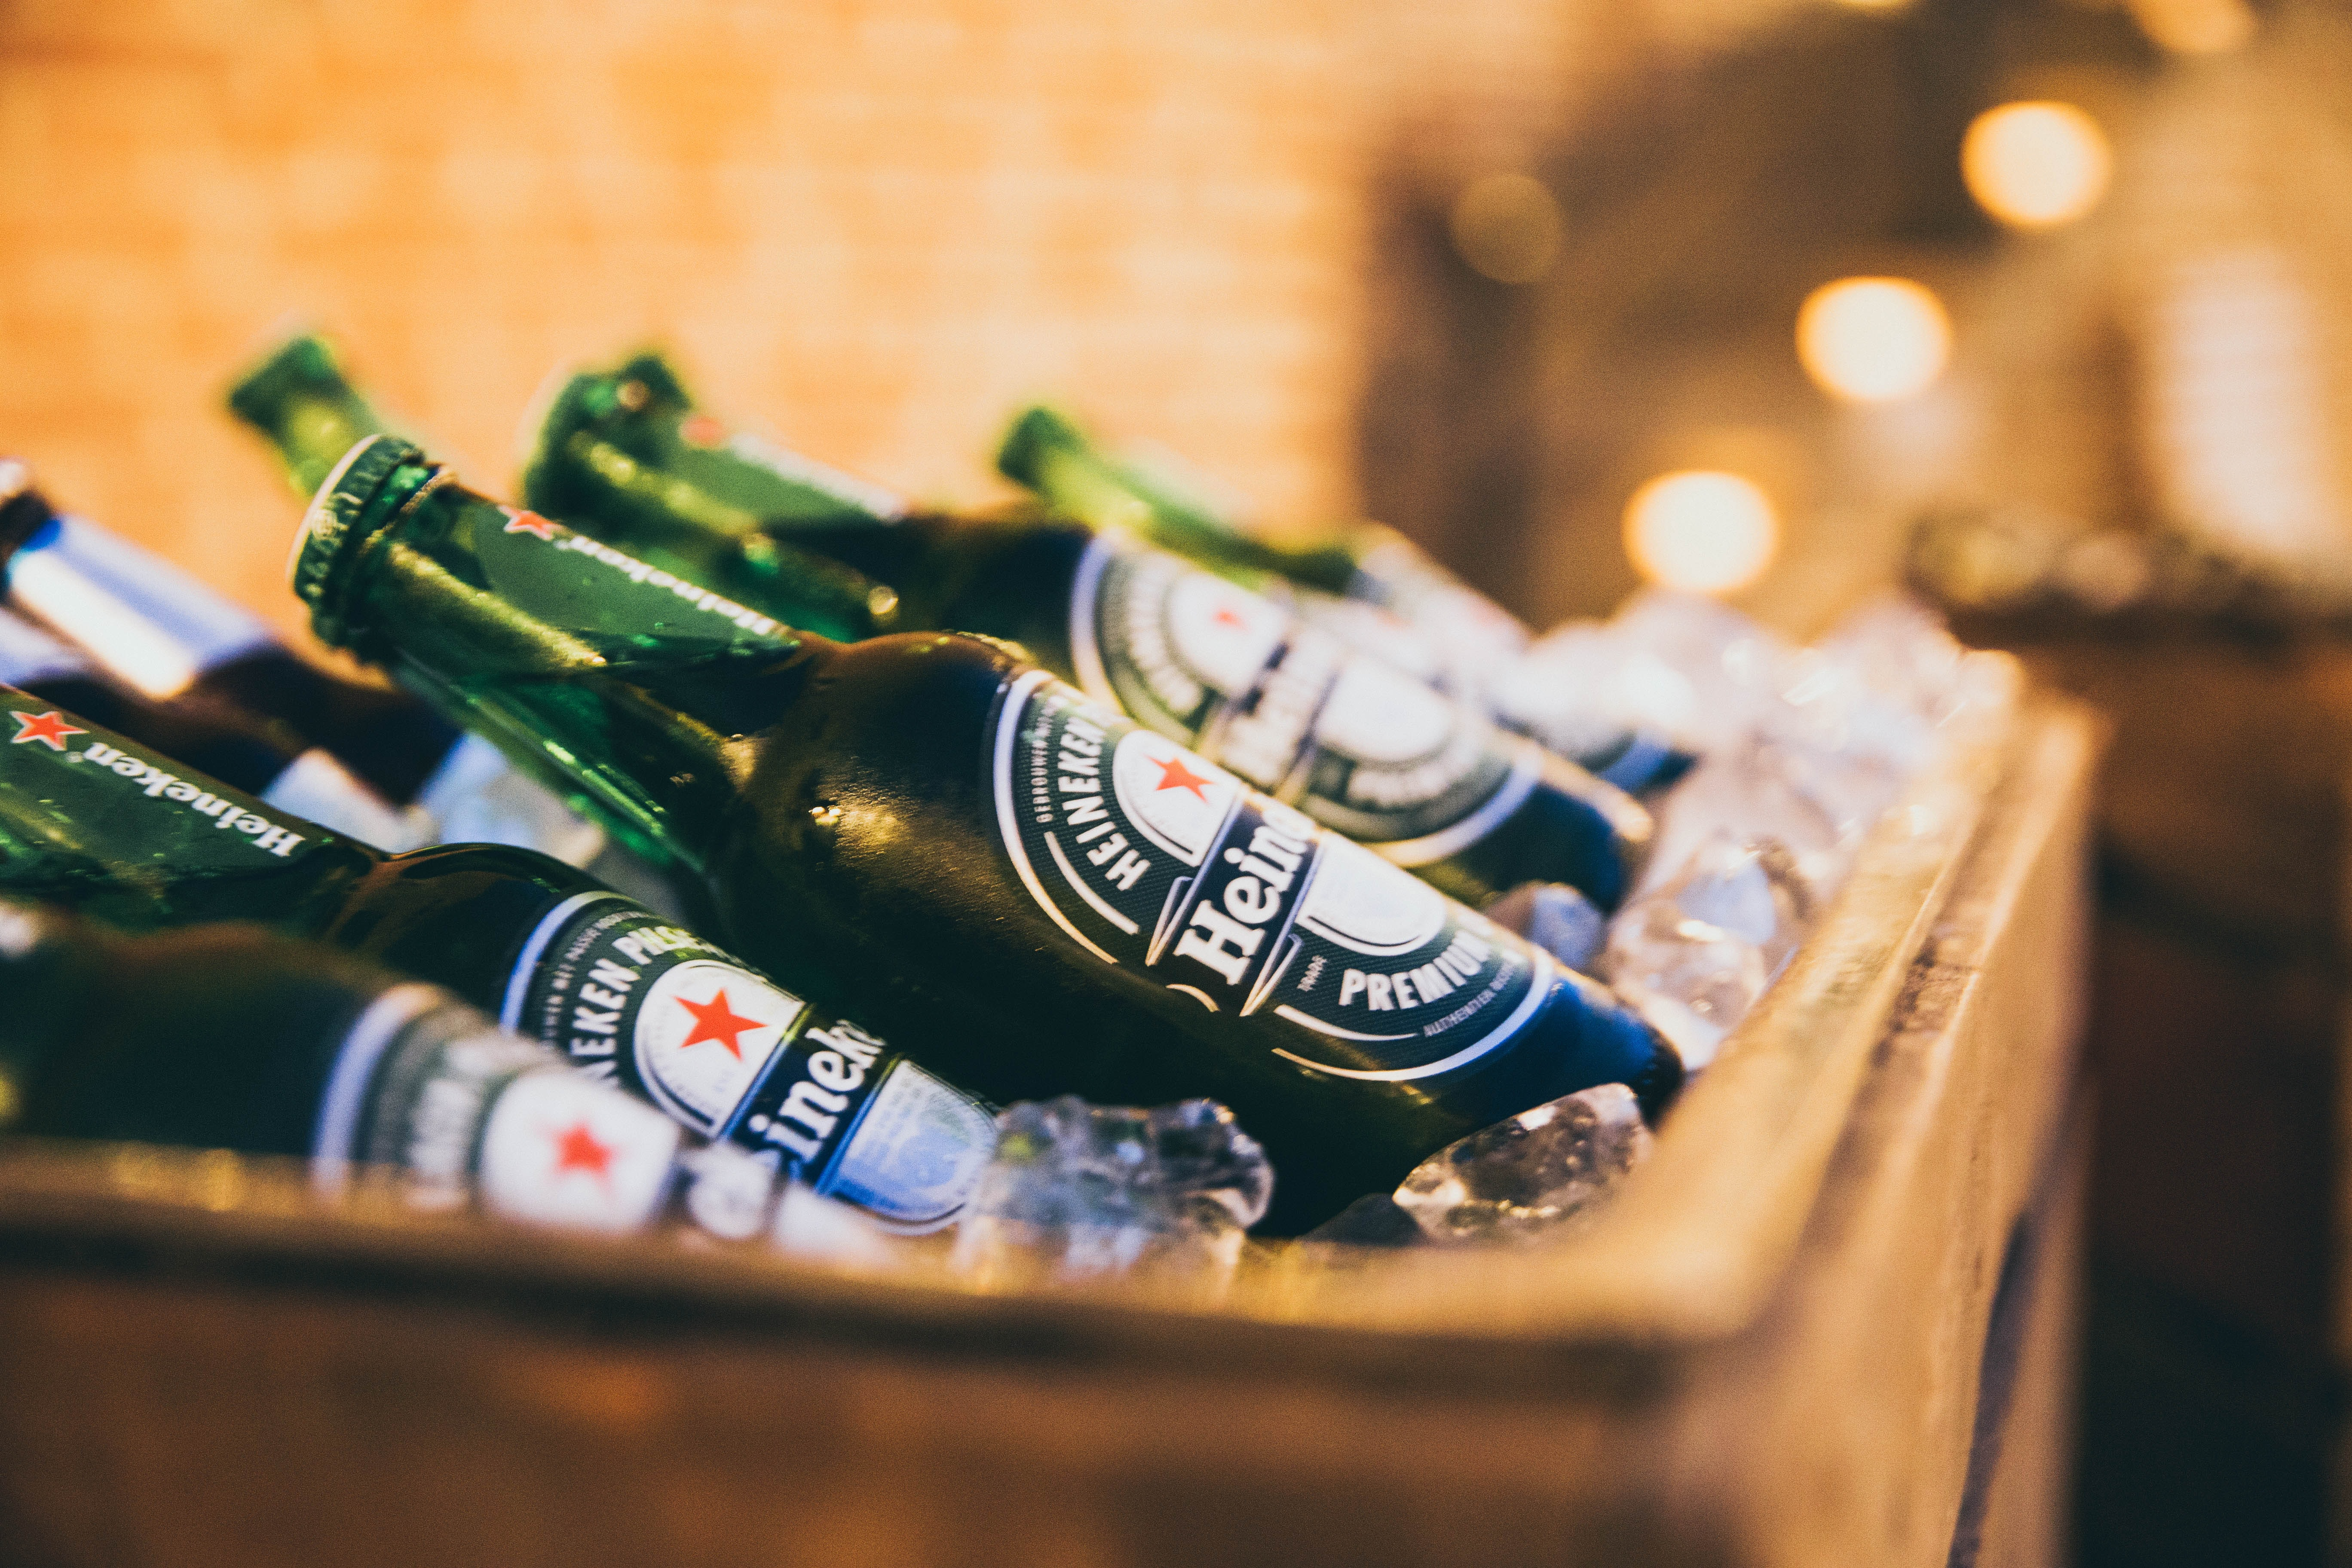 Heineken Brewery Tour, Things To Do In Amsterdam